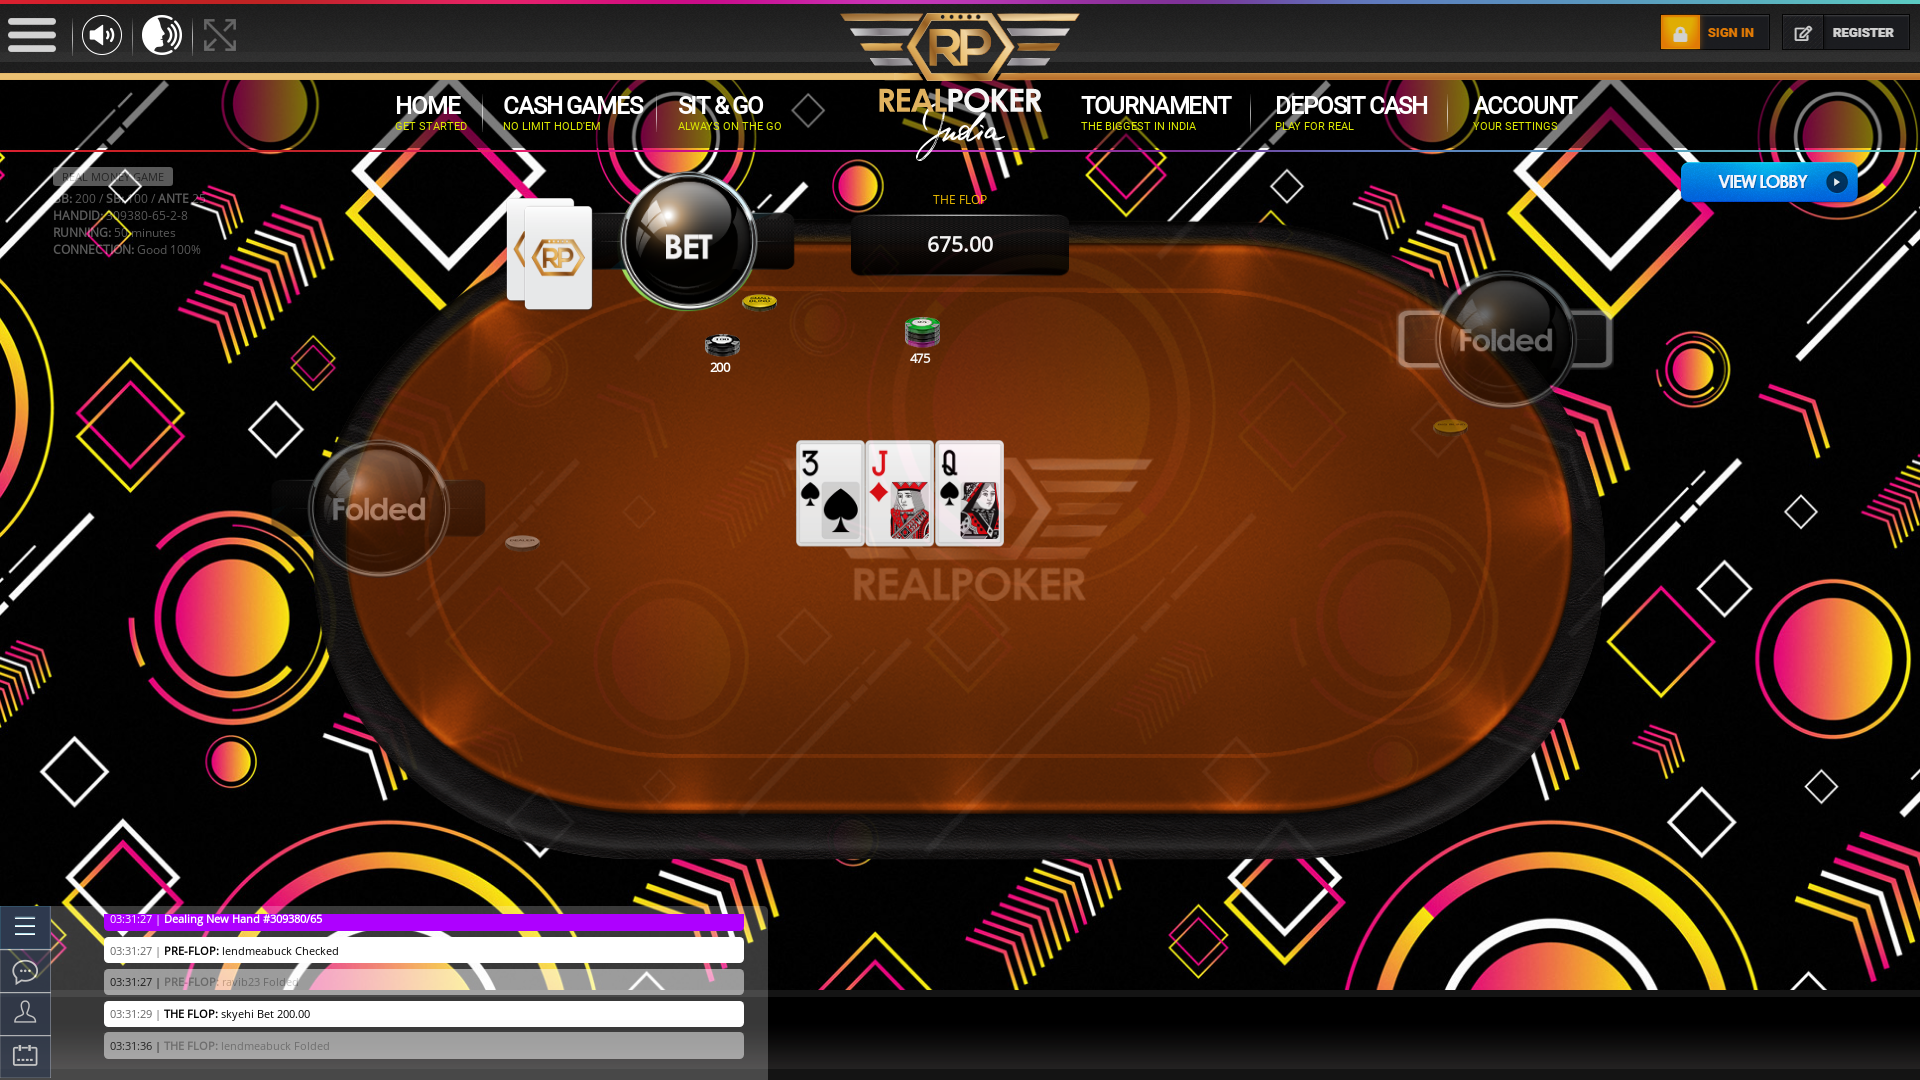 Indian poker on a 10 player table in the 50th minute